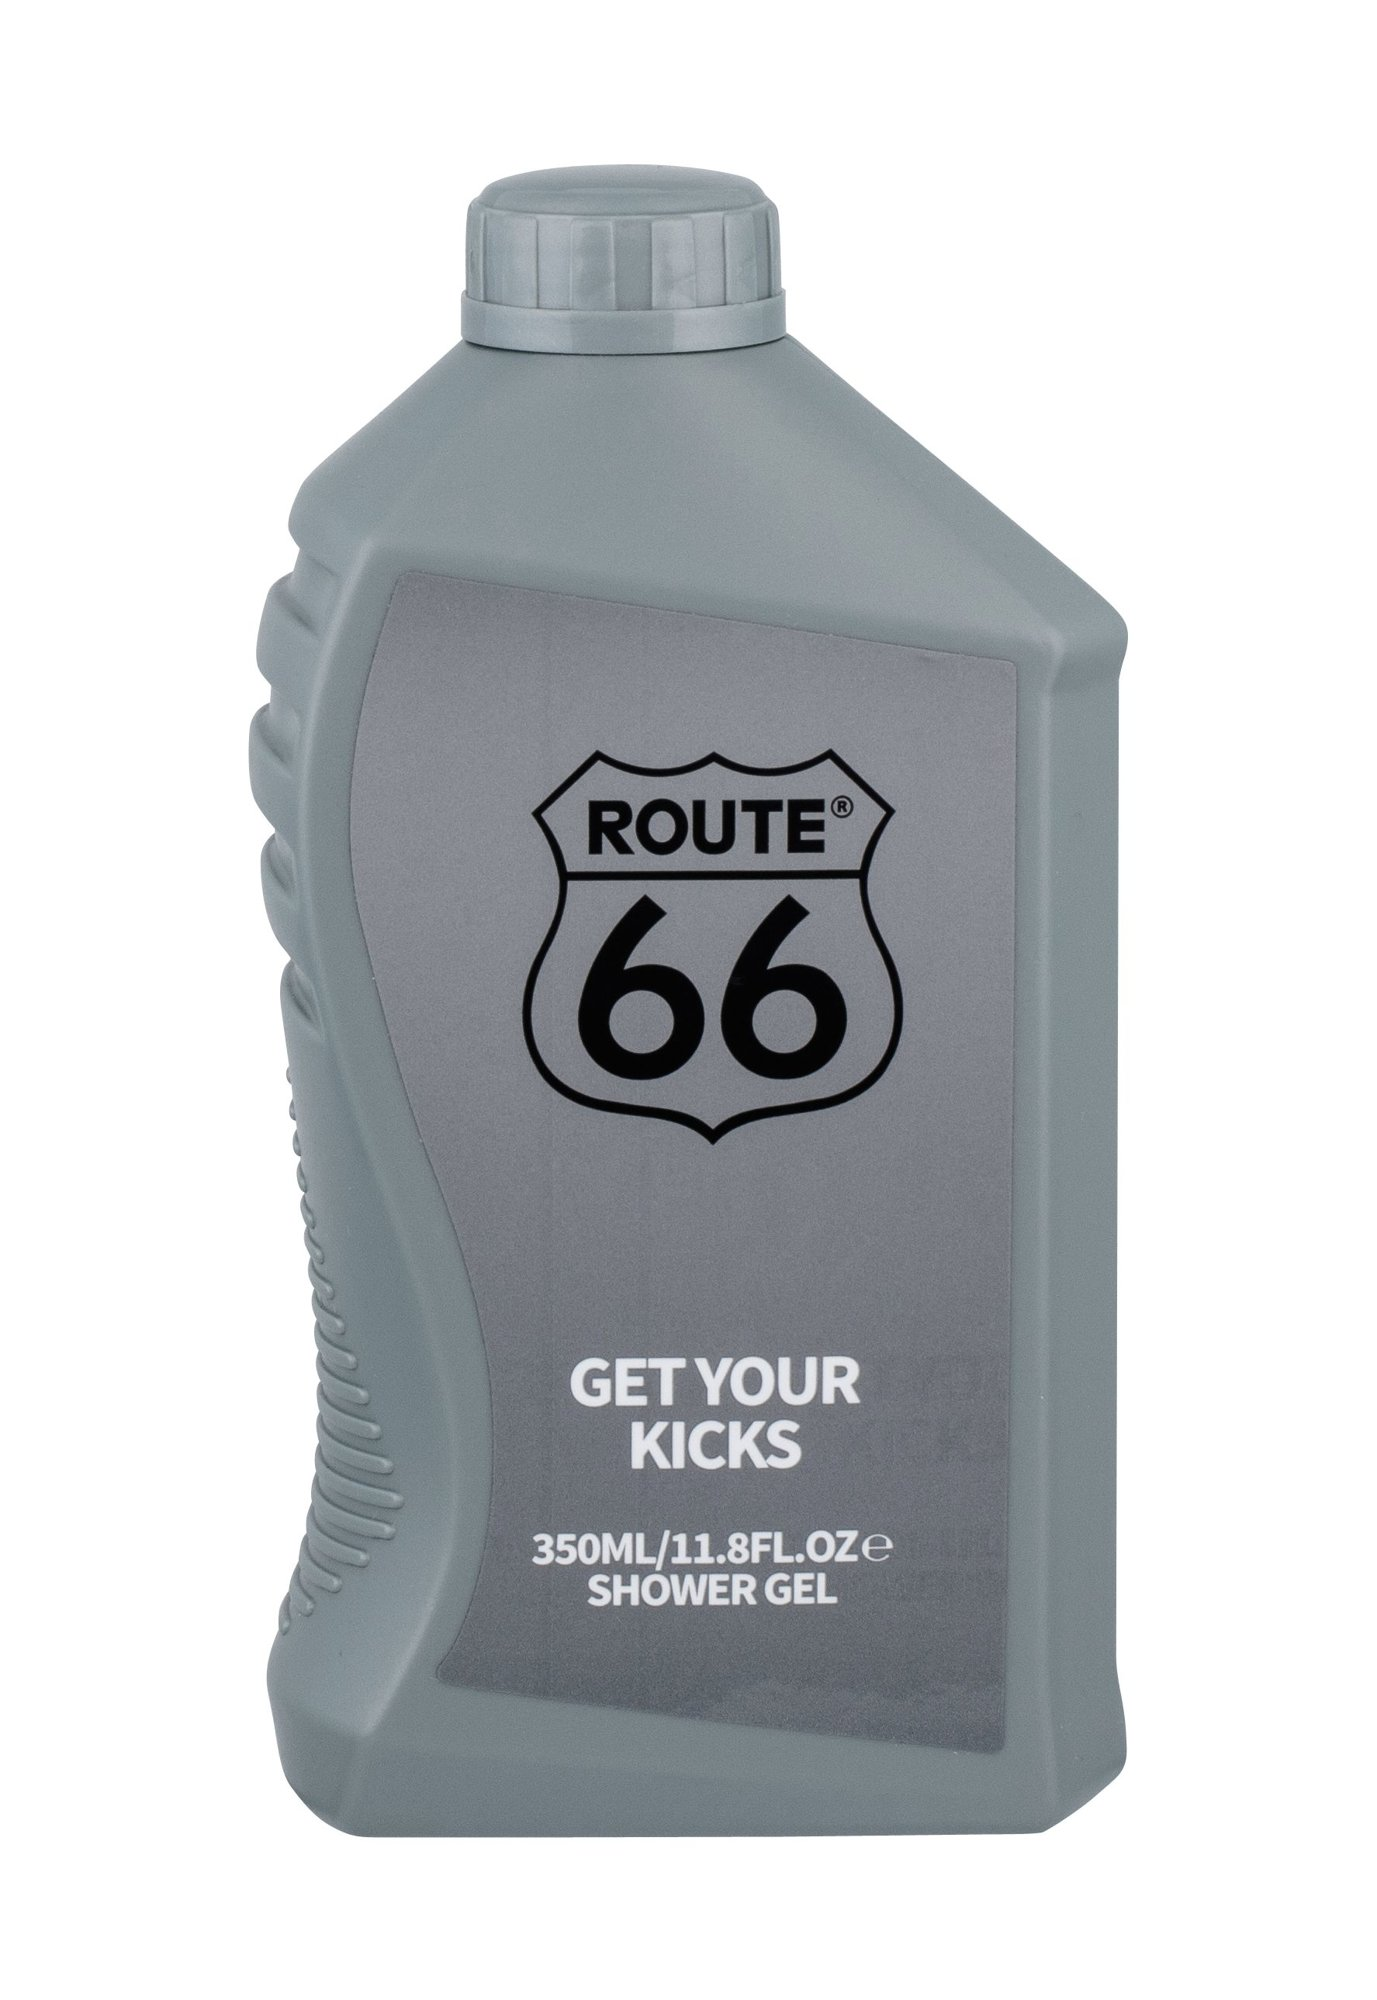 Route 66 Get Your Kicks Shower gel 350ml